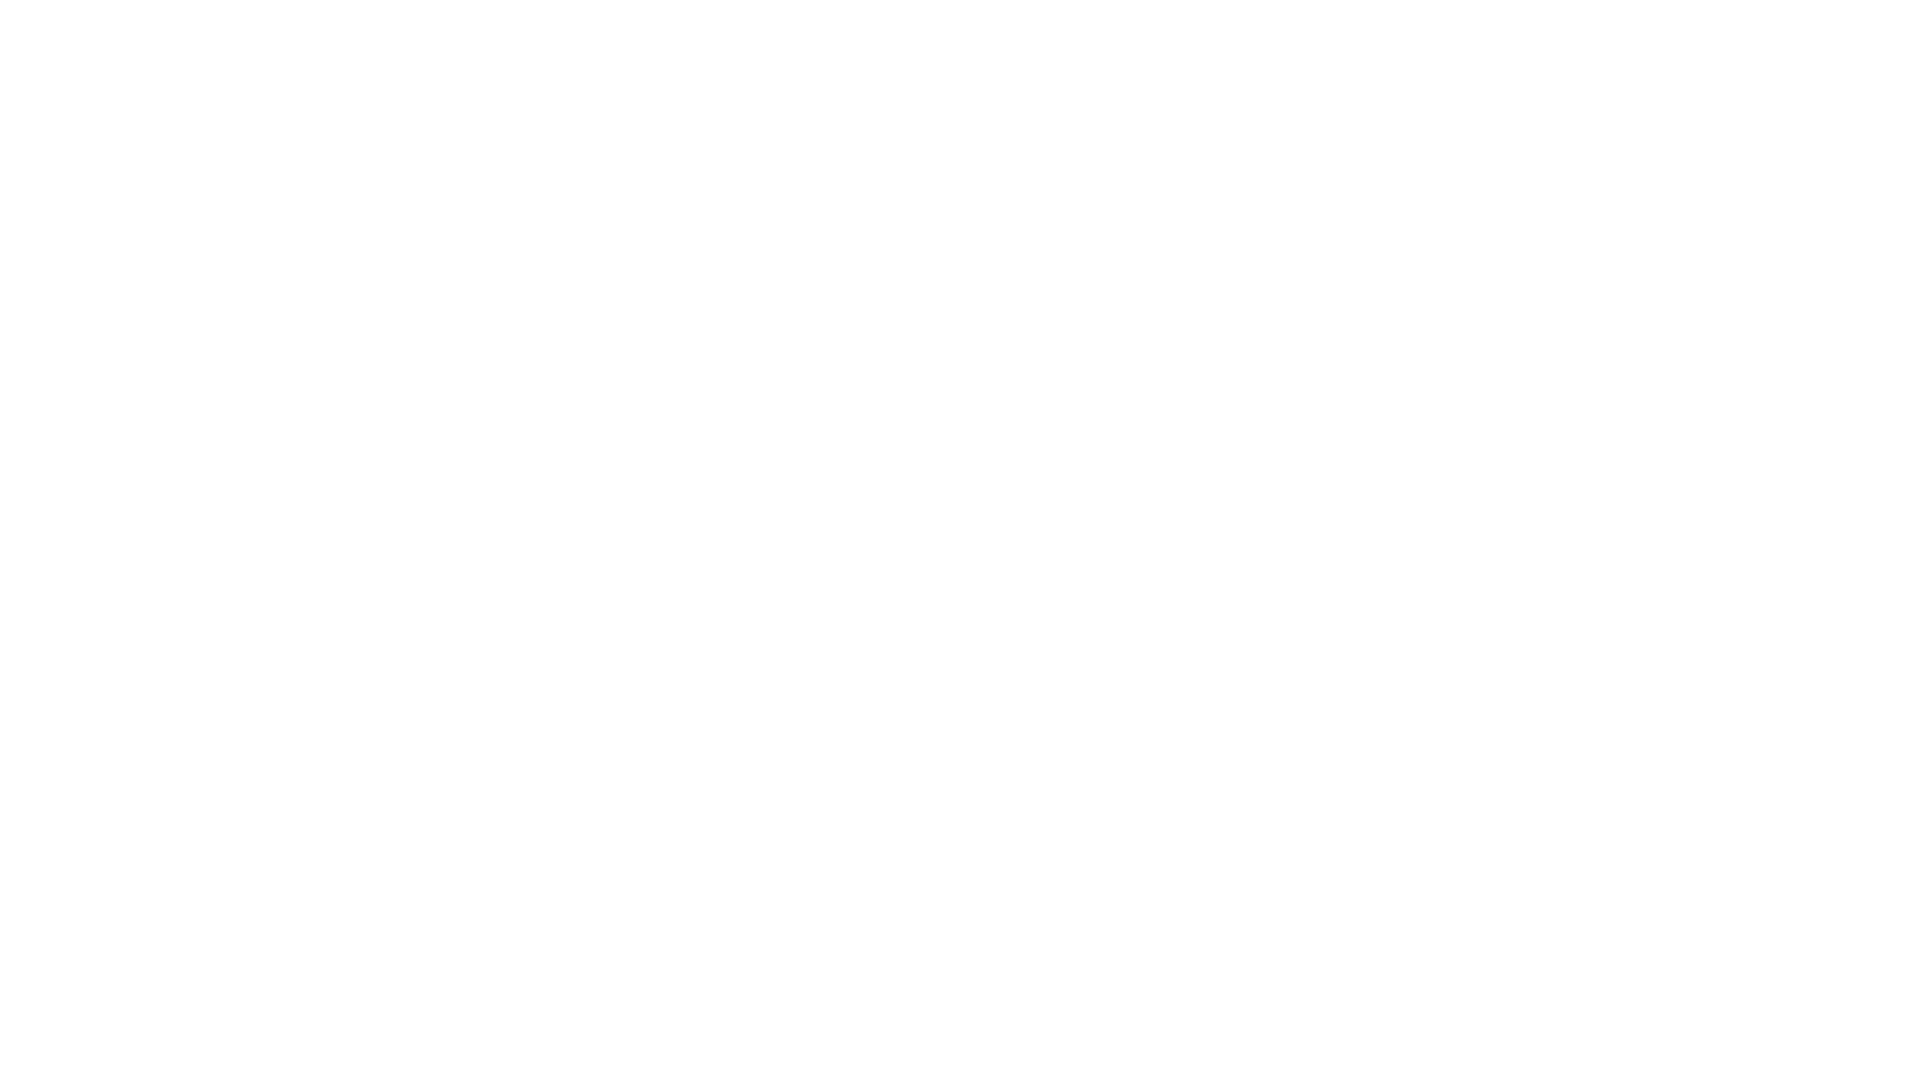 Tranquility Salon Spa Is A Louisville Hair That Has Been In Business Since 1997 The Offers Wide Range Of Care Services Such As